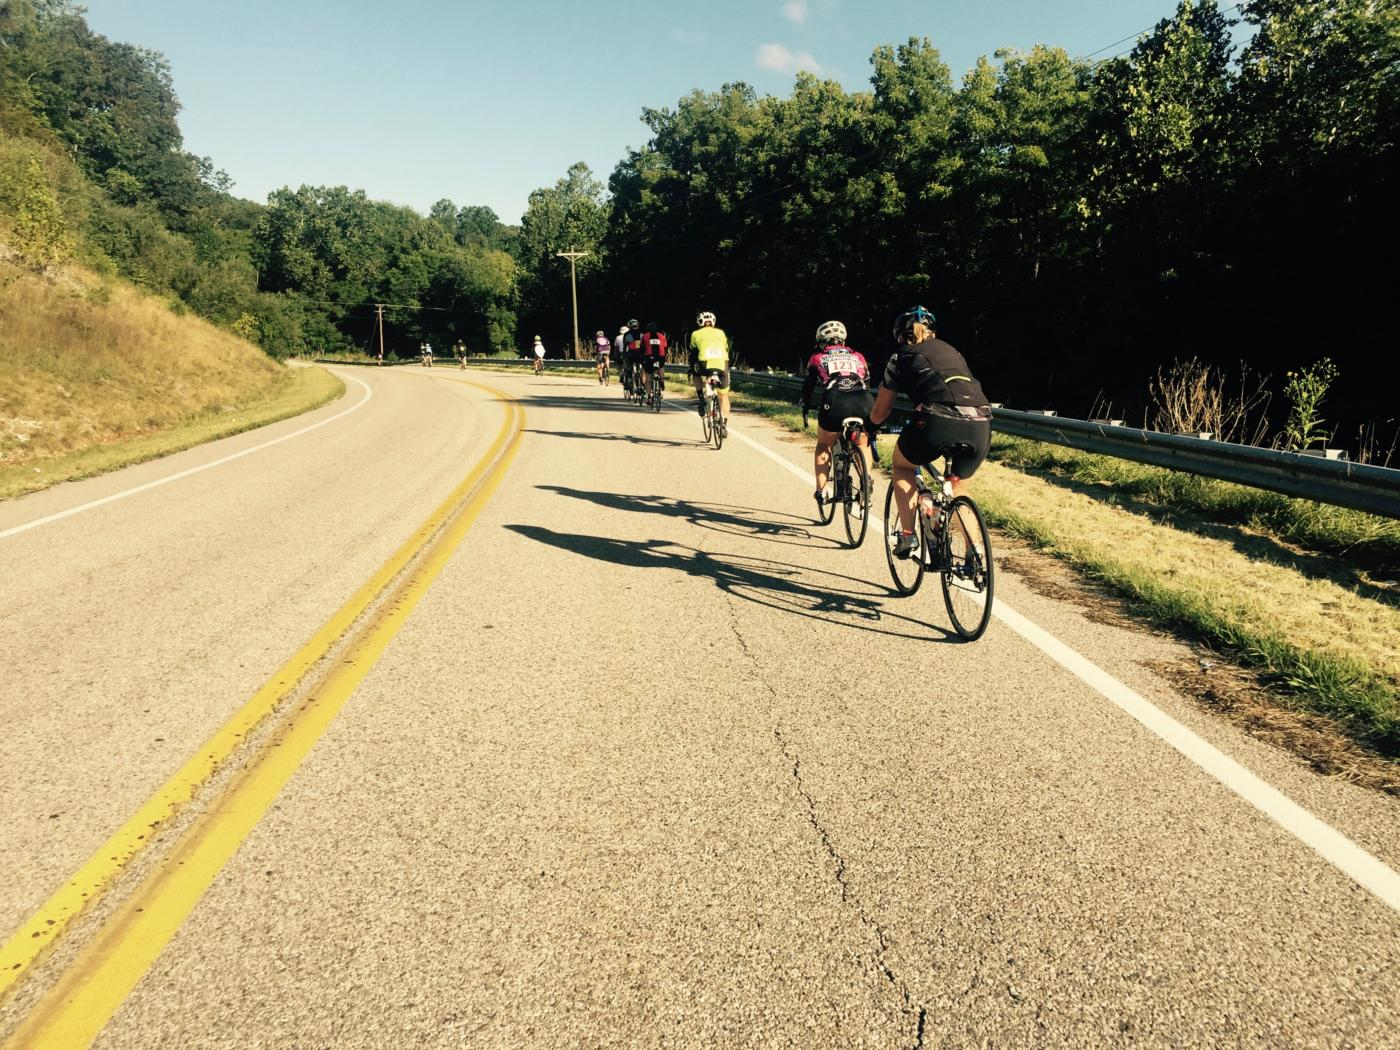 Riding through the town of Middlebrook on the Tour de Valley